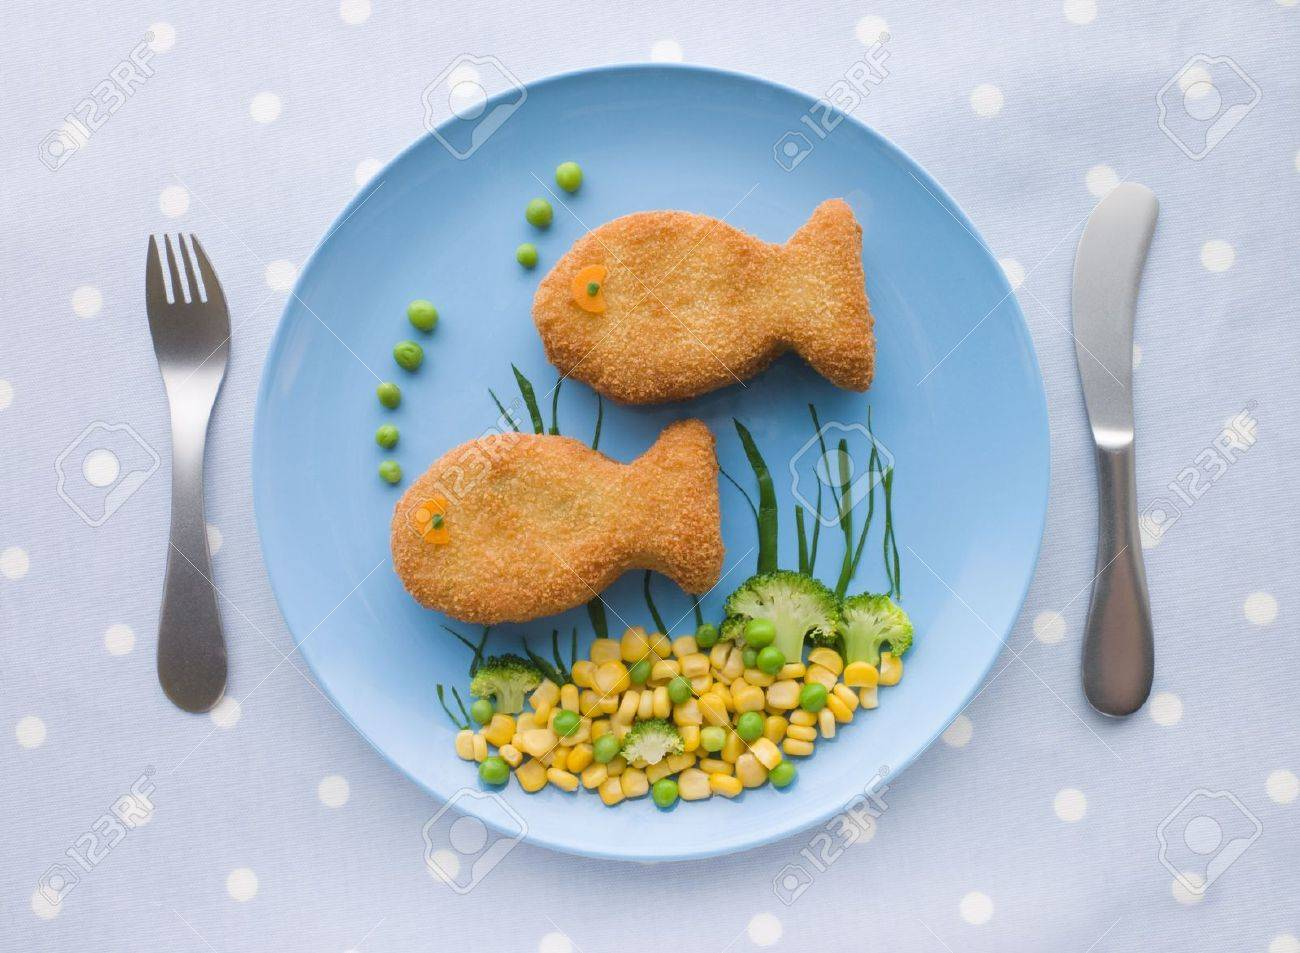 Fish Cakes with Vegetables Stock Photo - 3600445